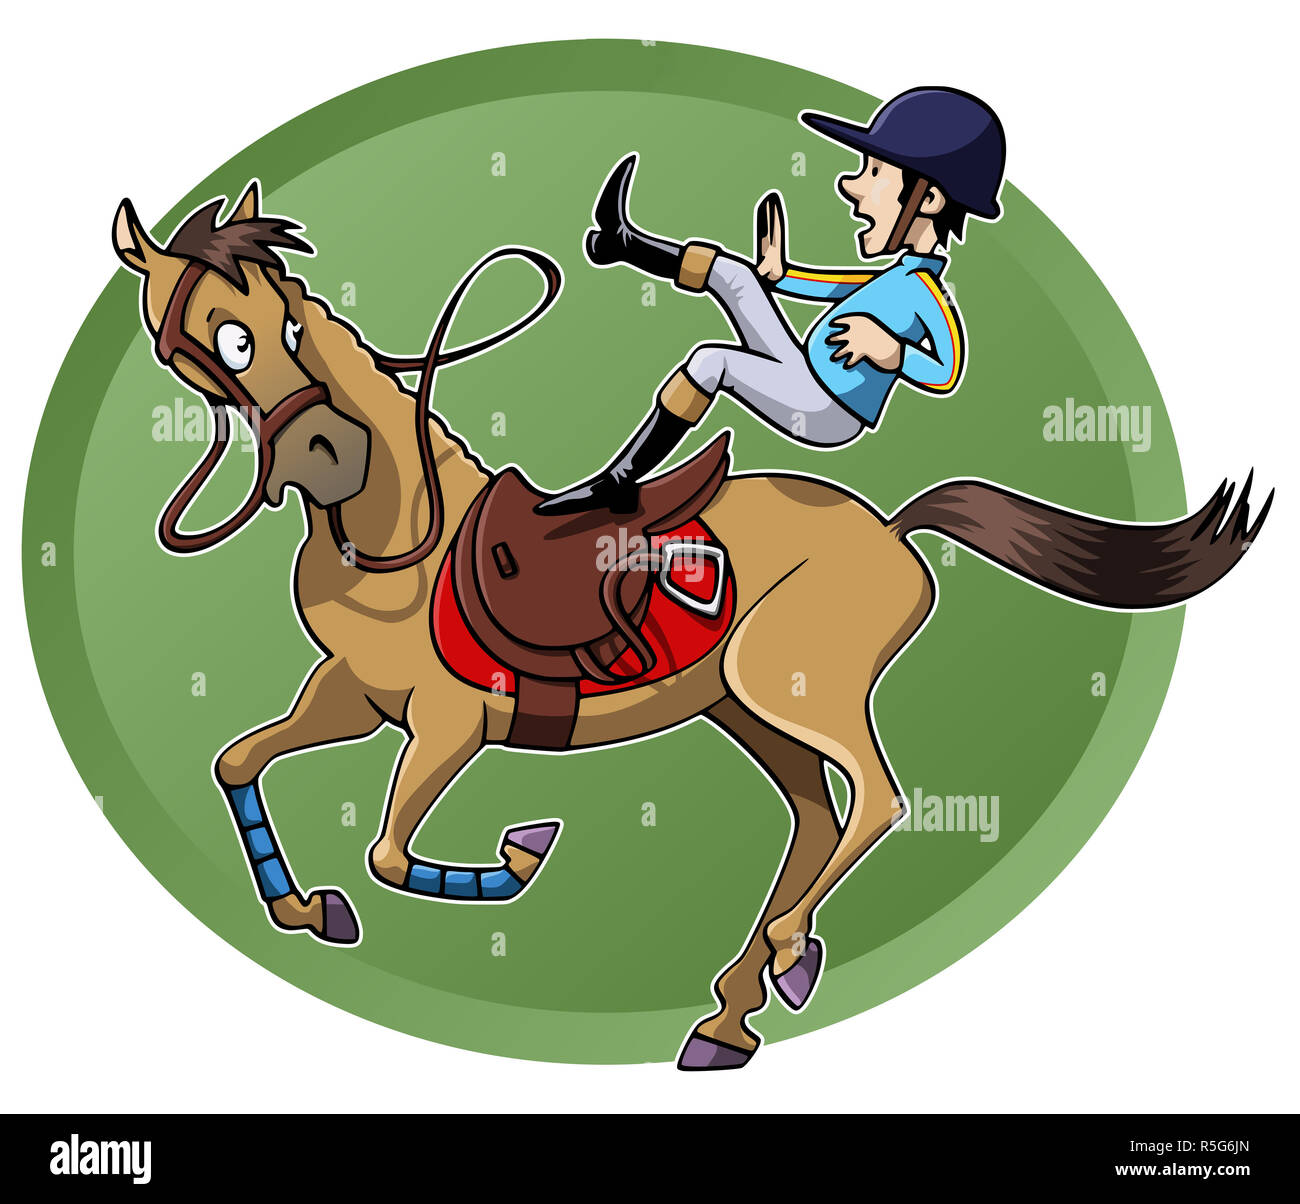 5db54c04c Funny cartoon-style illustration: a rider is unsaddled from his ...